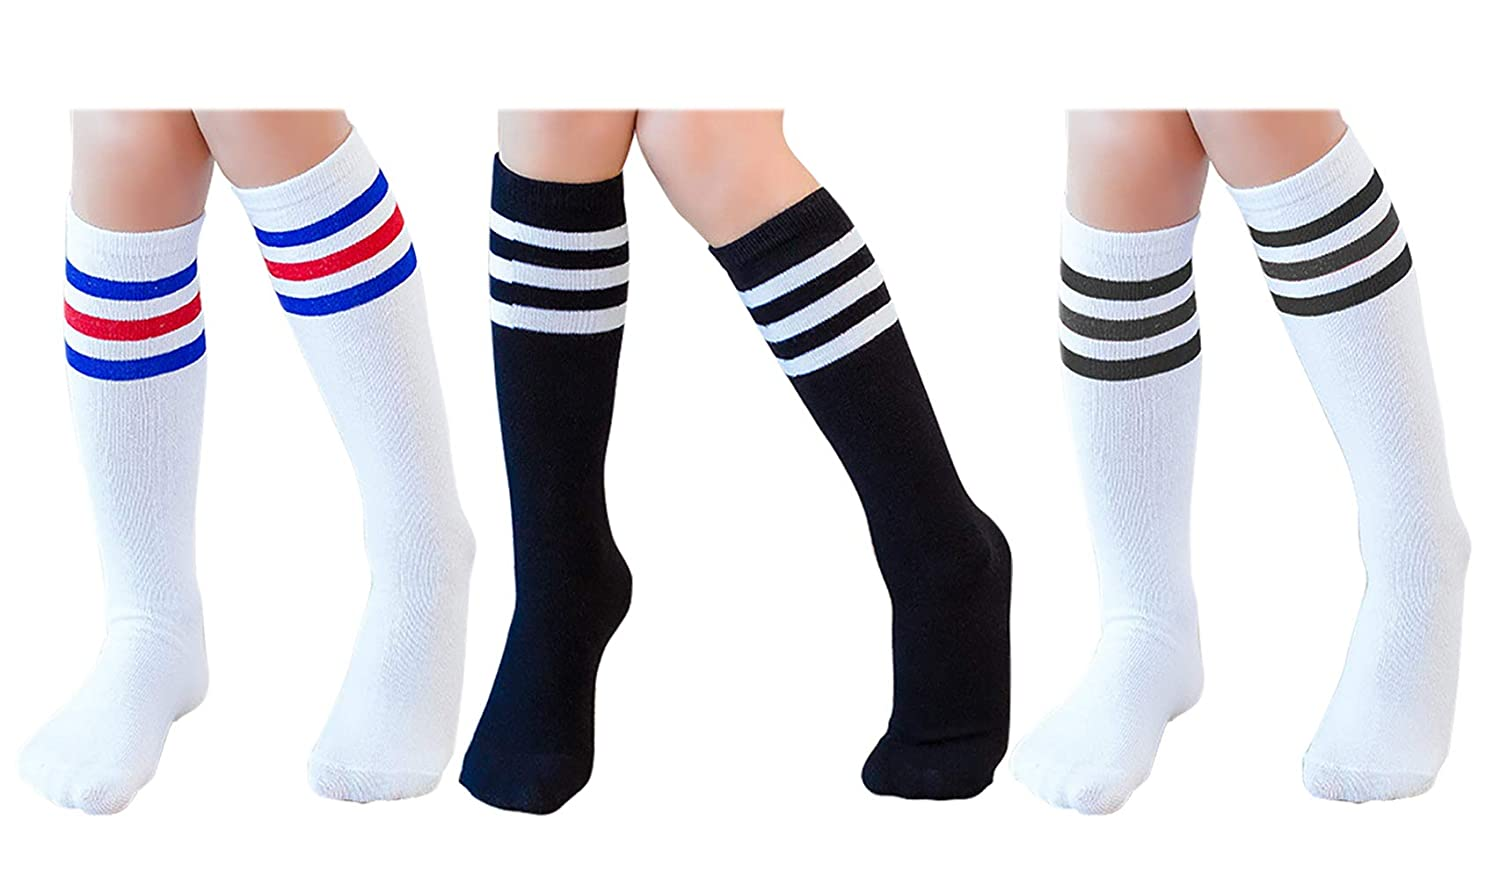 Toddler /& Child 3,4 Pairs Knee High Tube Socks for Boys Girls Baby